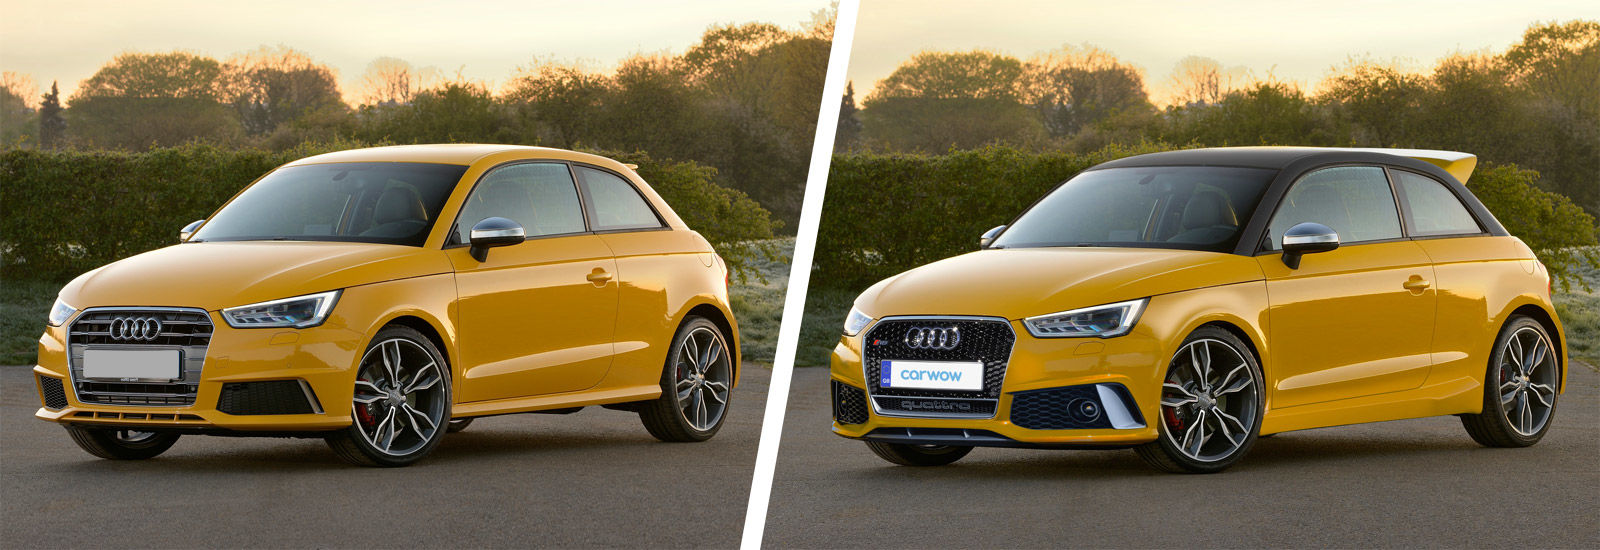 2017 Audi Rs1 Price Specs And Release Date Carwow